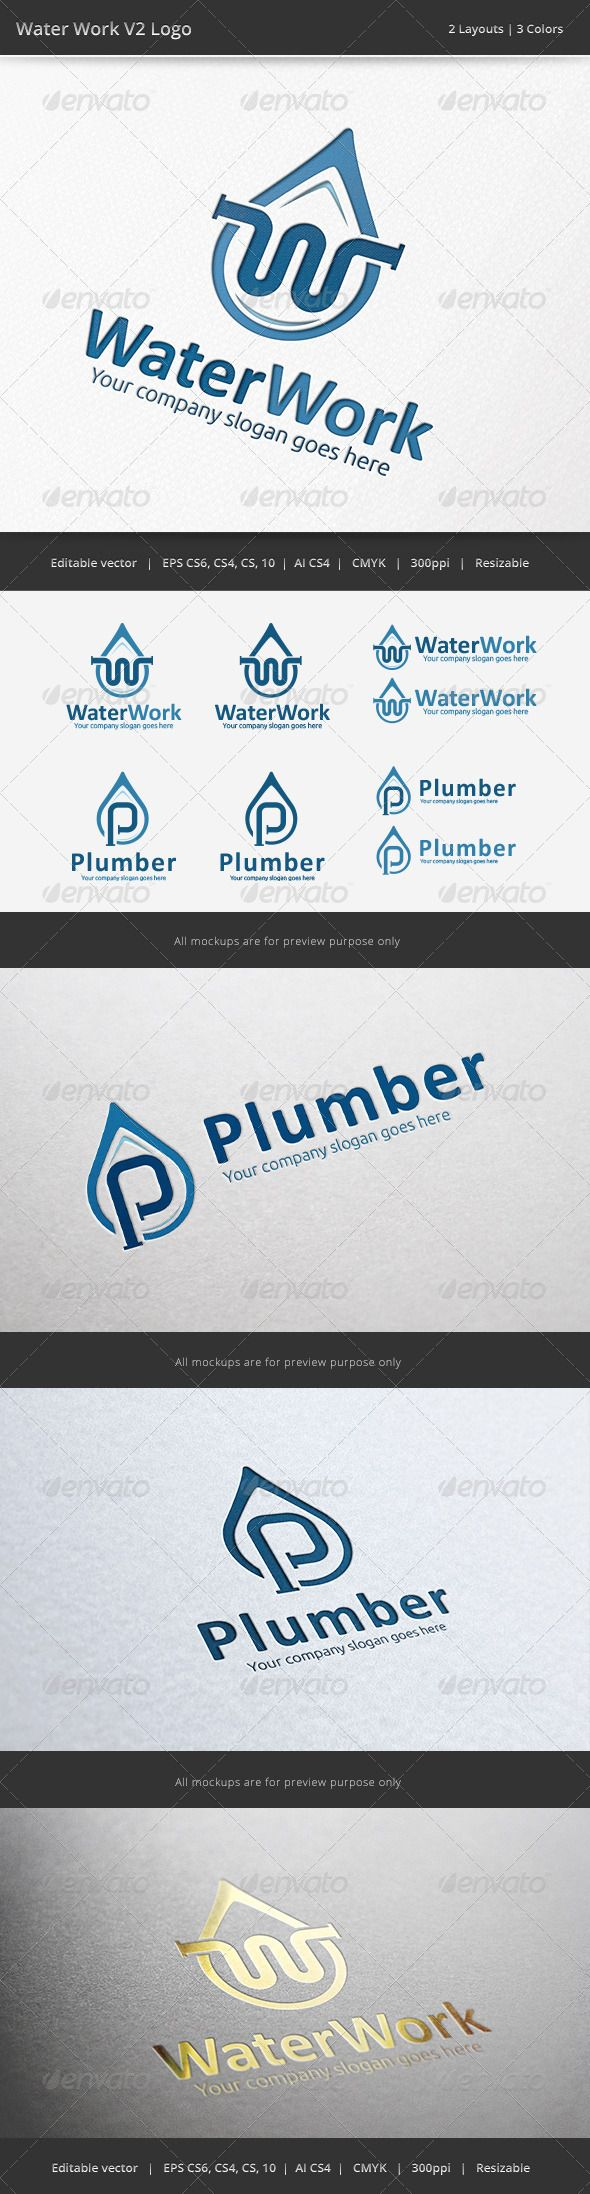 17 best Plumbing logo images on Pinterest | Carte de visite ...